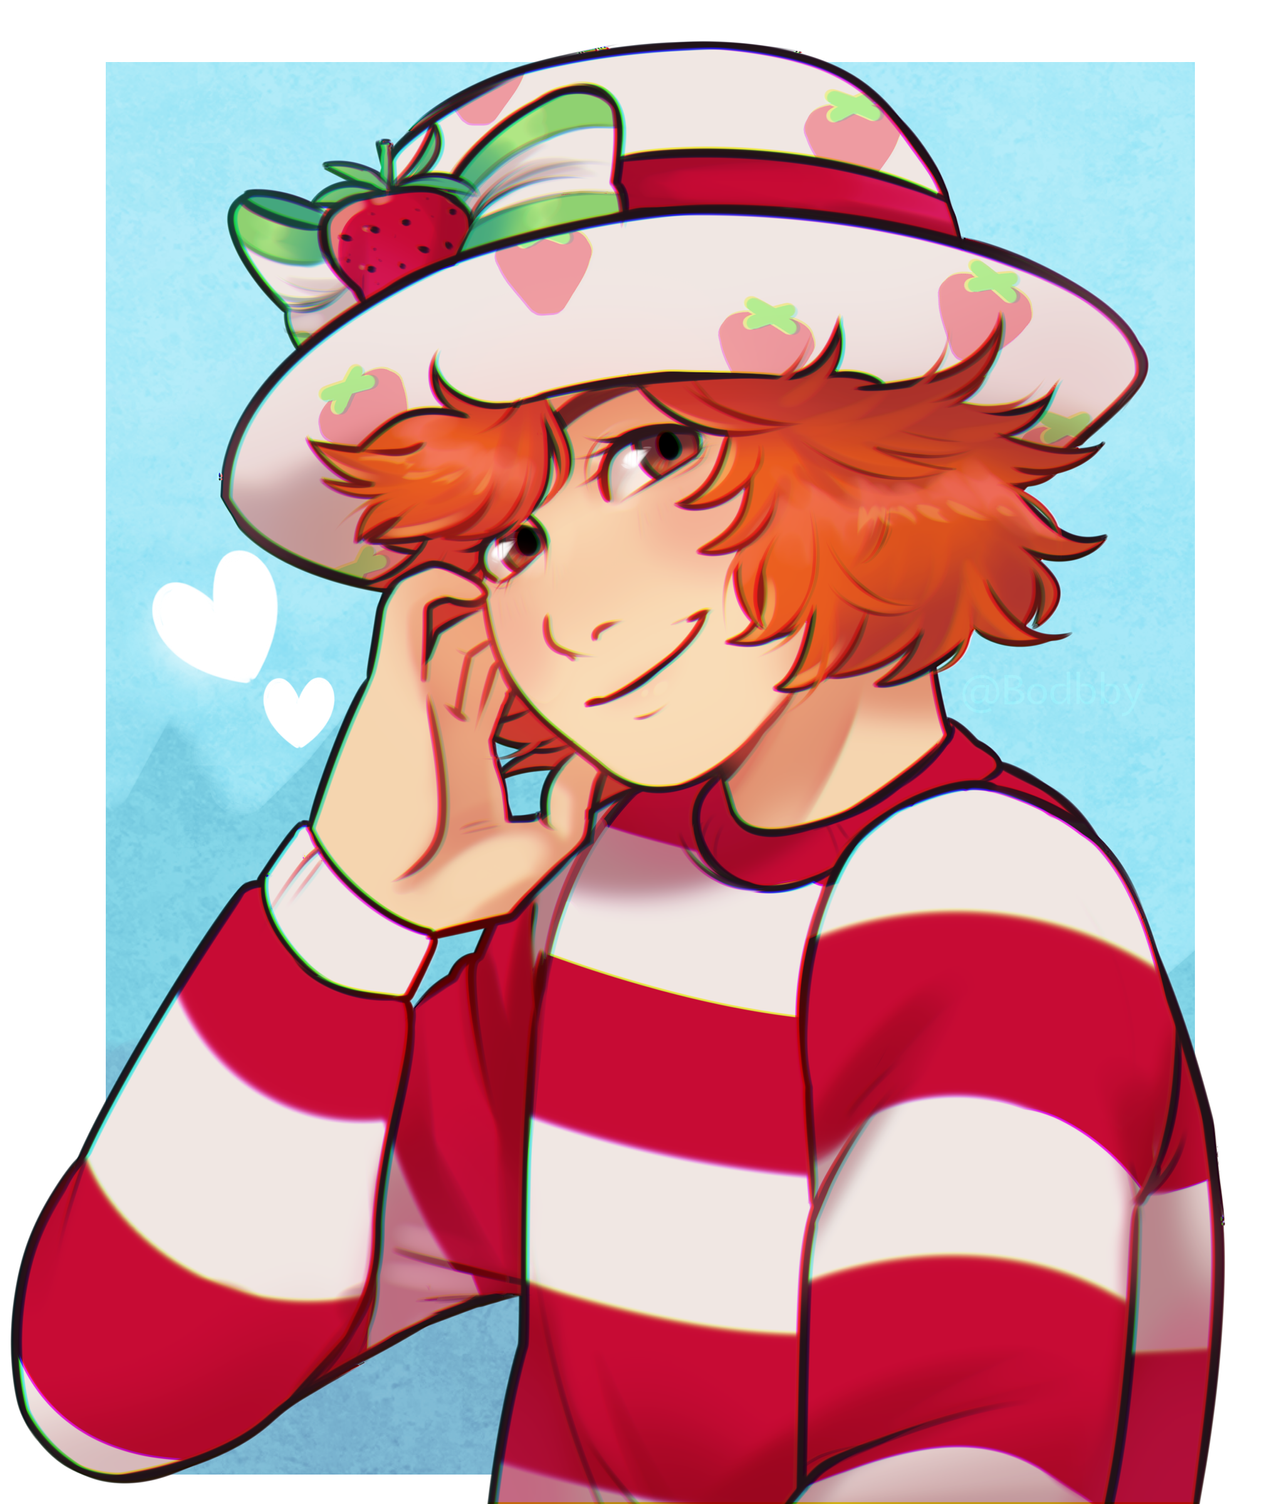 Strawberry Shortcake (2003) by Boddbby on DeviantArt